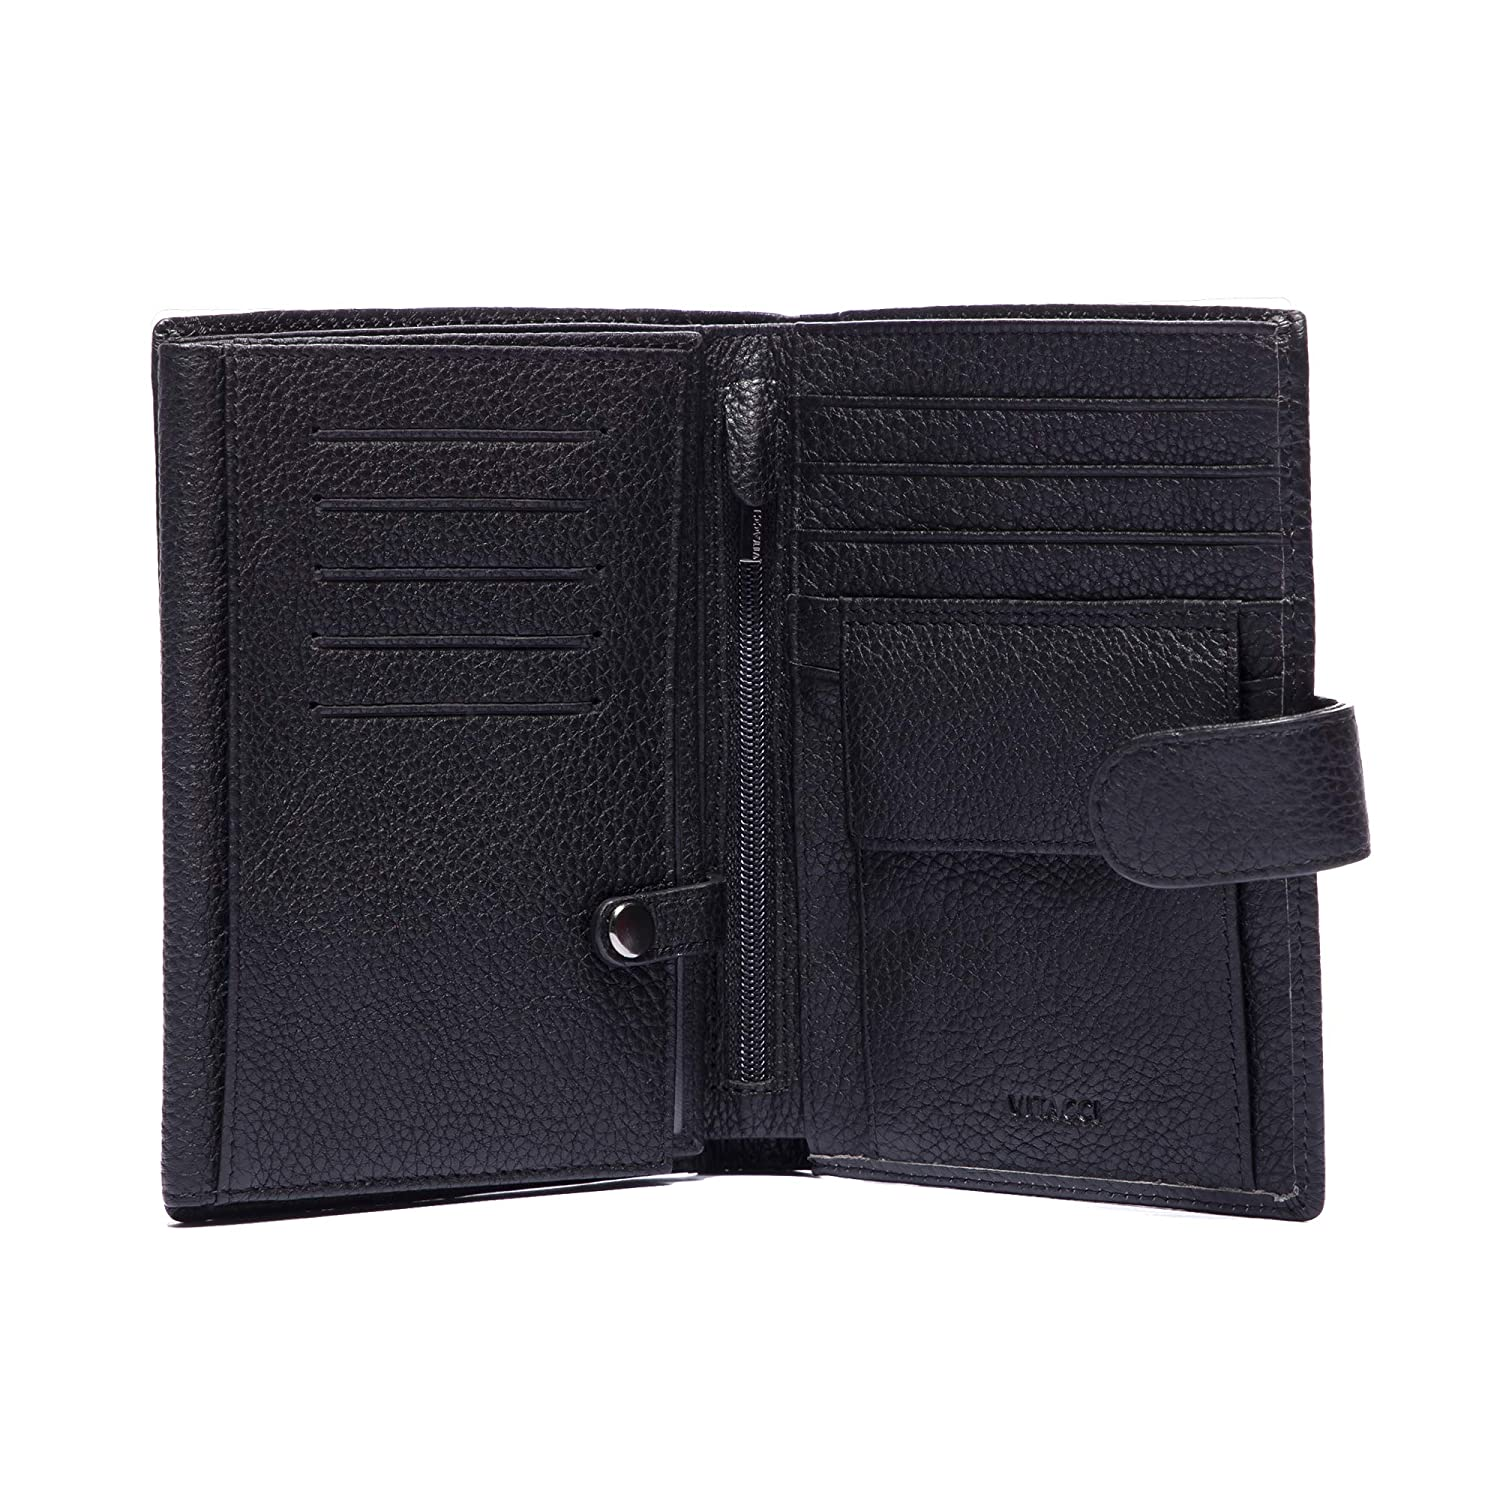 Securely Holds Leather Wallet Organizer Wallets for Men